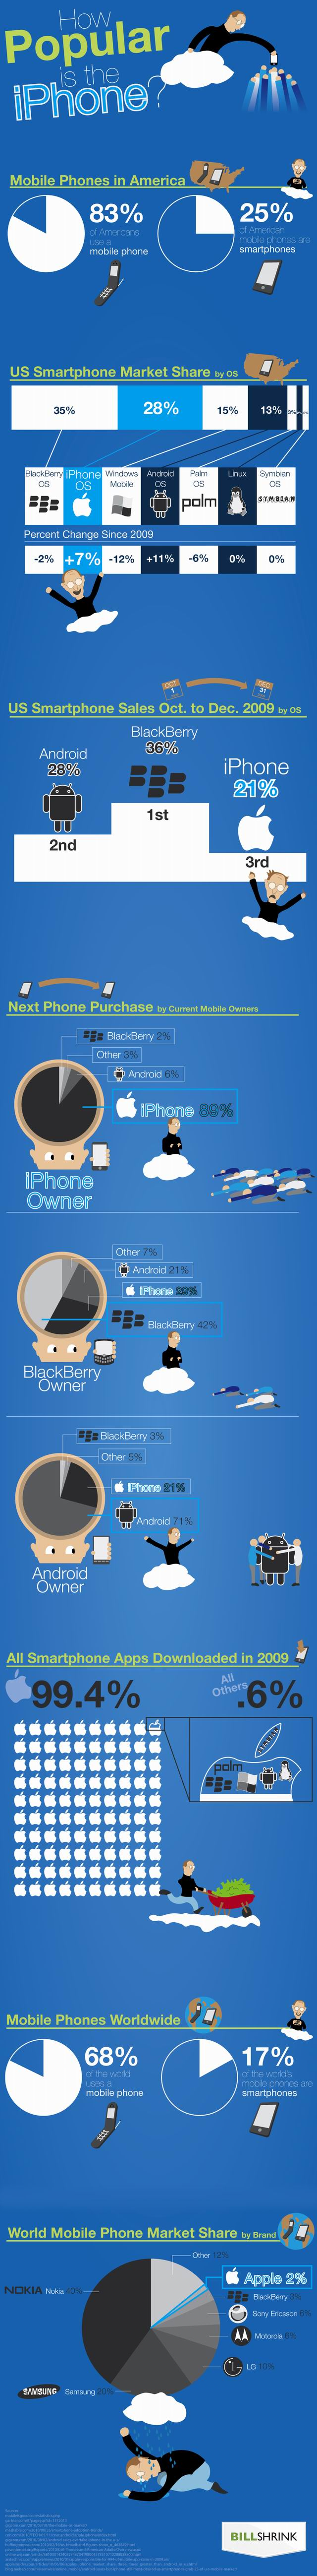 iPhone_infographic